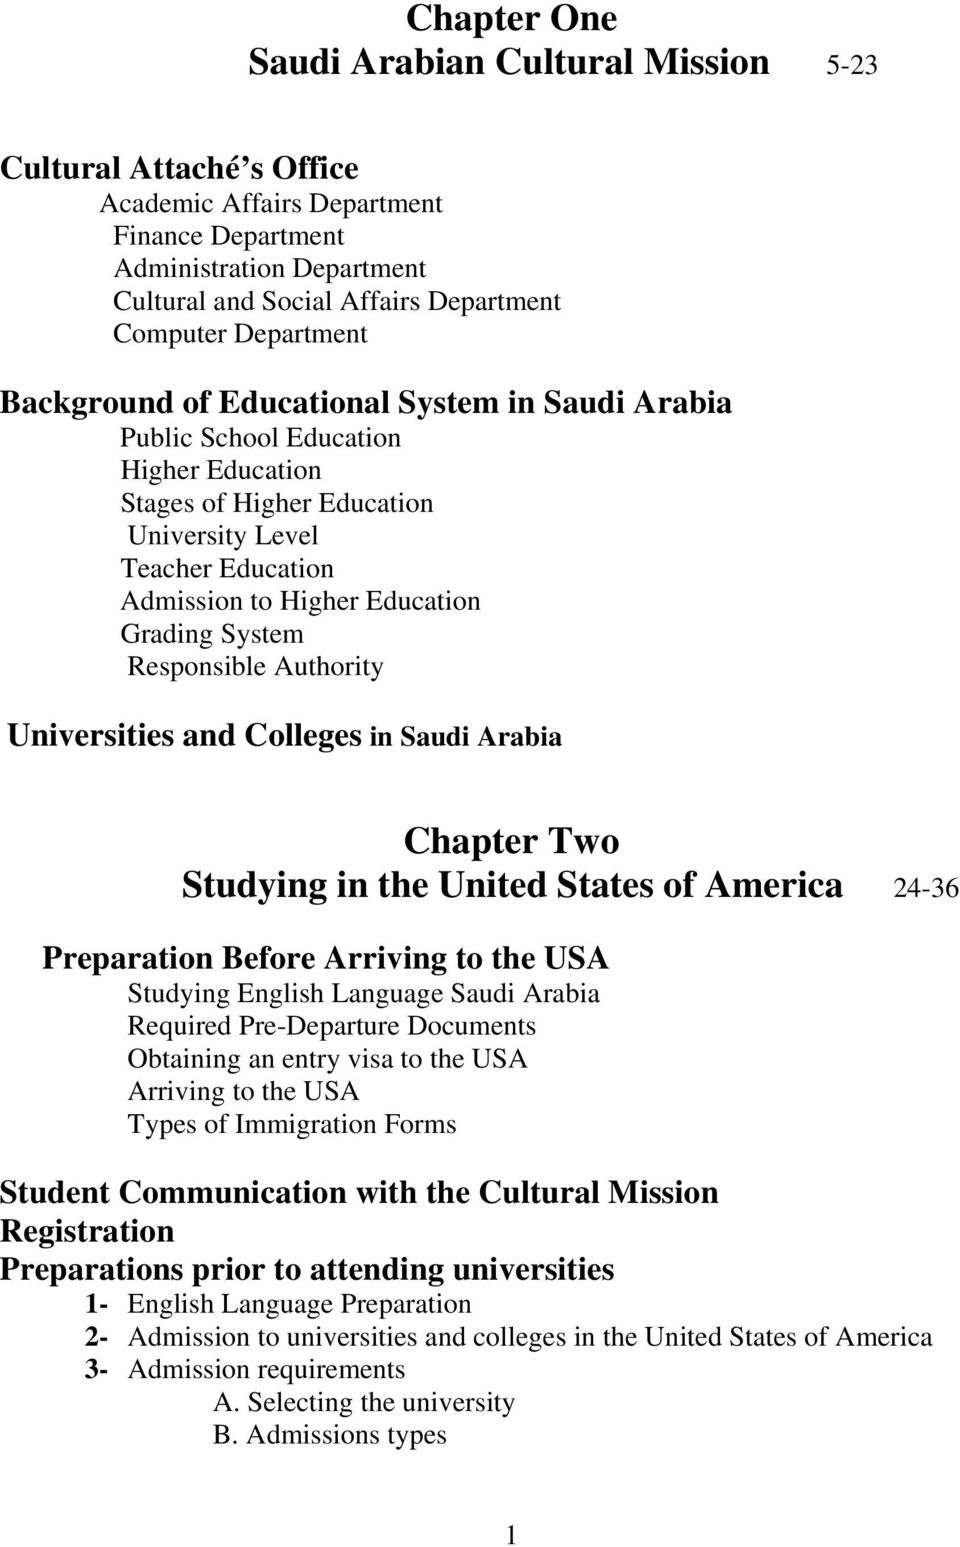 Grading System Responsible Authority Universities and Colleges in Saudi Arabia Chapter Two Studying in the United States of America 24-36 Preparation Before Arriving to the USA Studying English